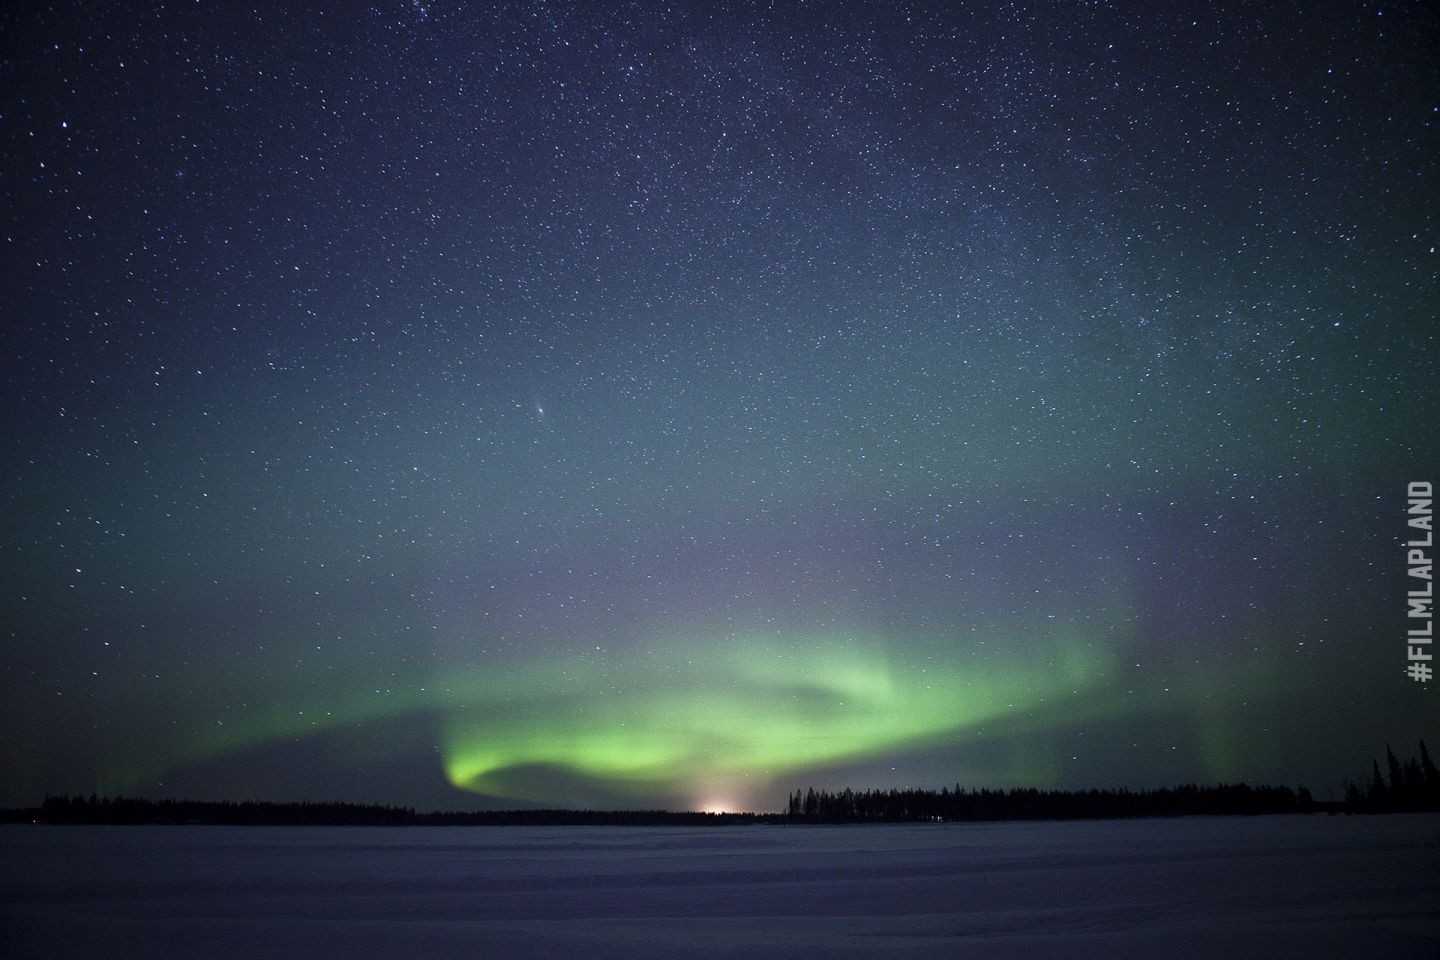 Northern Lights over snowy frozen lake in Sodankylä, Finland